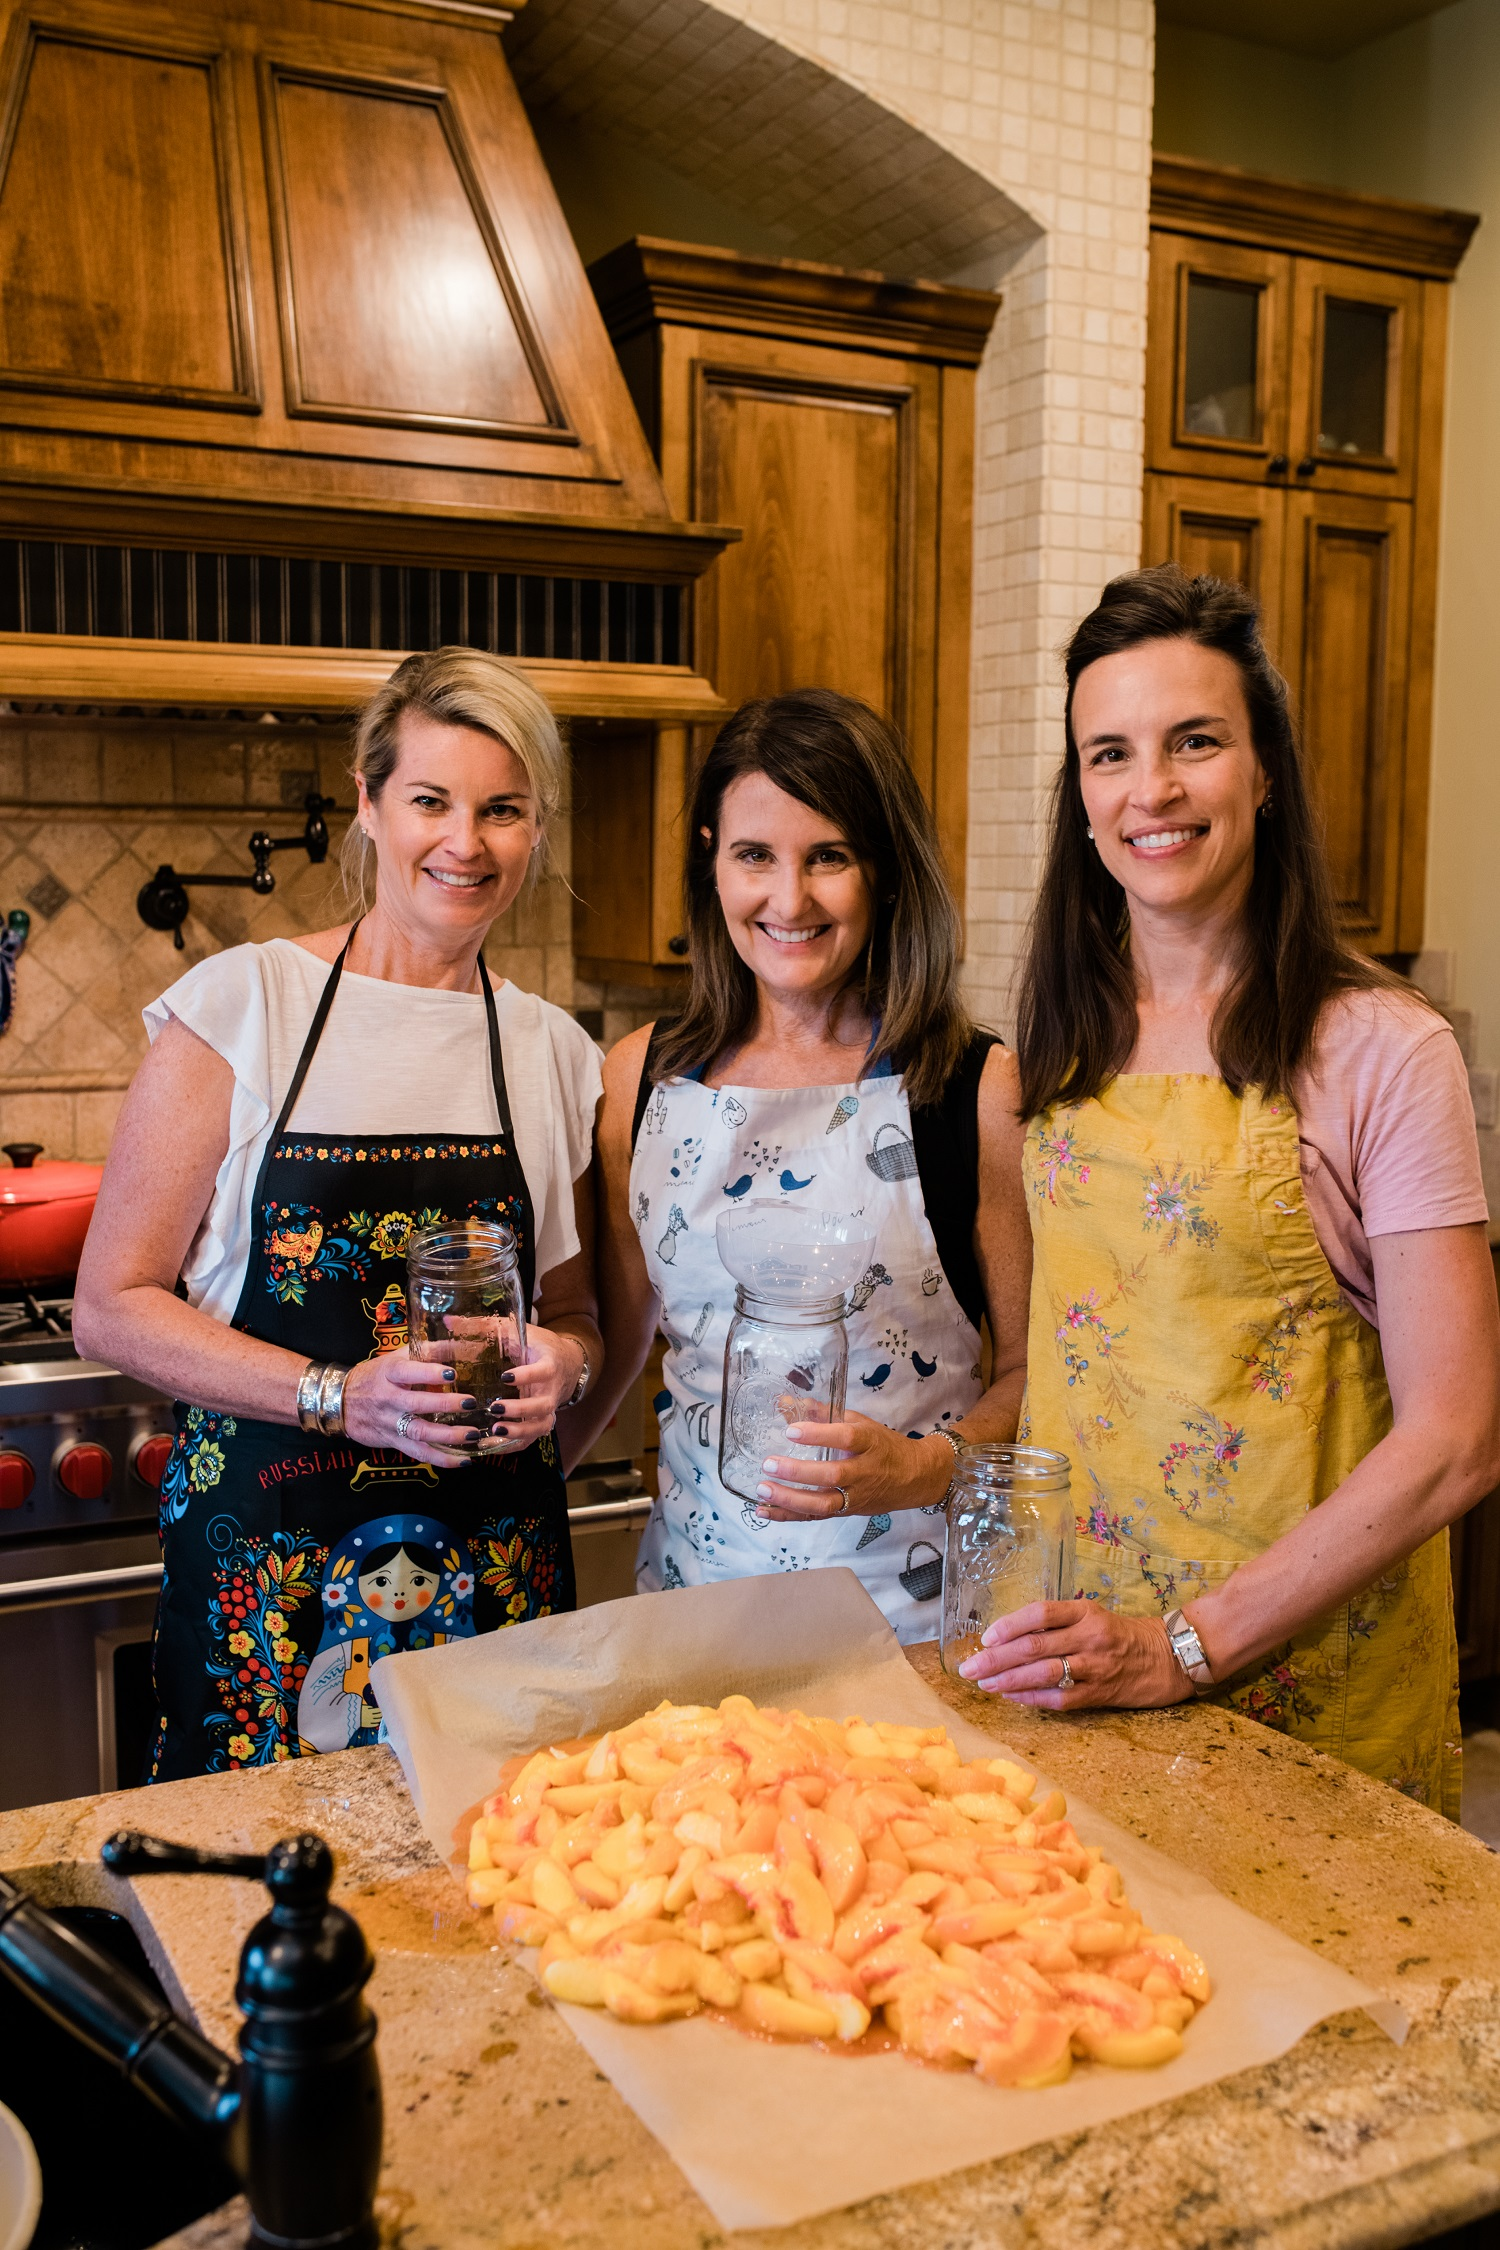 susan-canning-with-friends.jpg